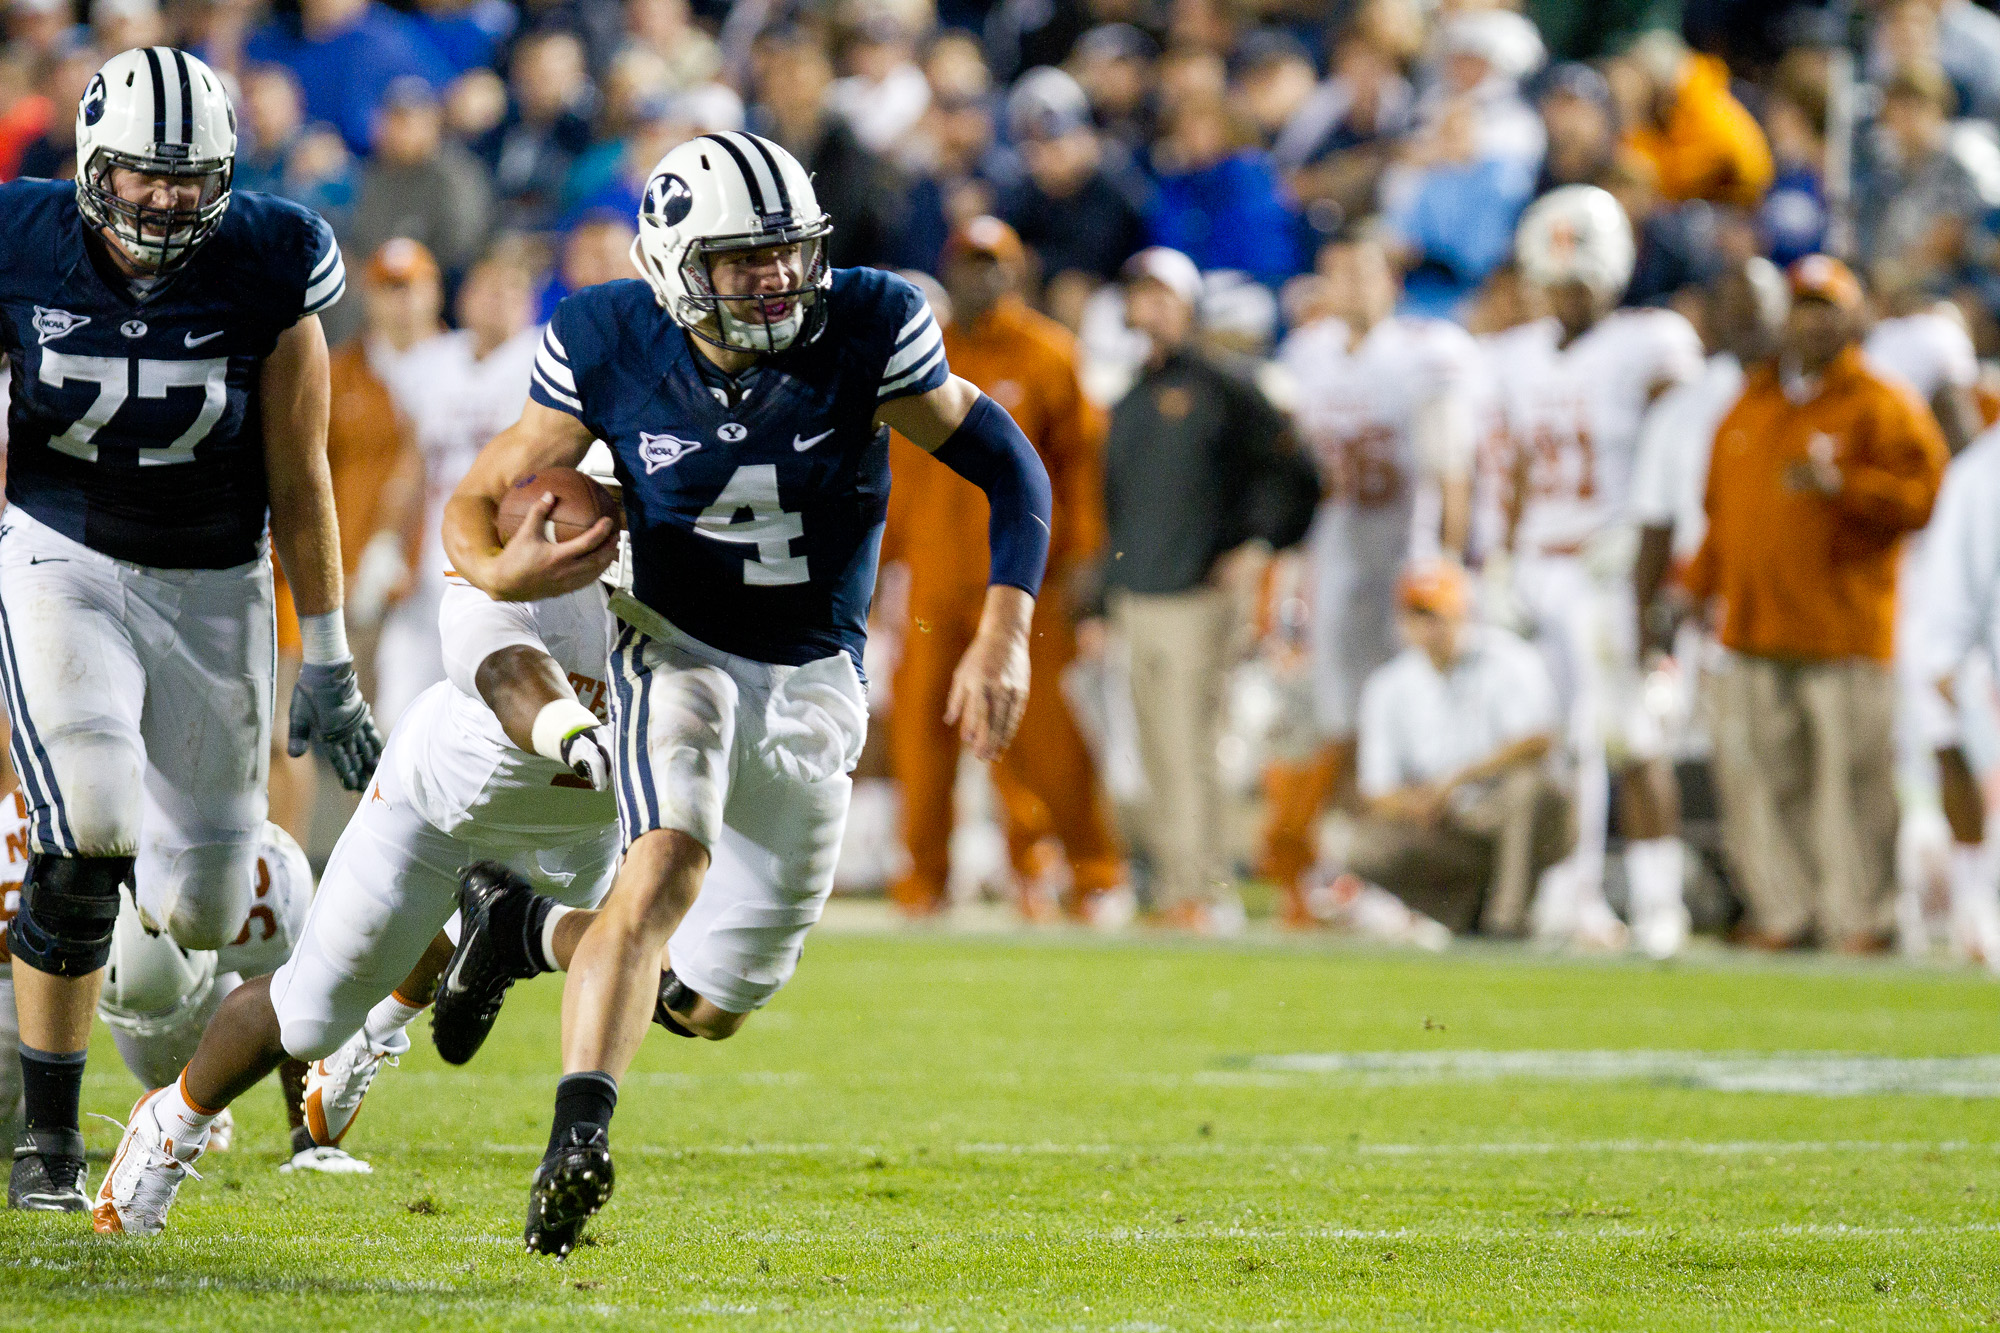 Quarterback Taysom Hill runs the ball during the Sept. 7 game vs. Texas at LaVell Edwards Stadium. (Photo by Sarah Hill.)